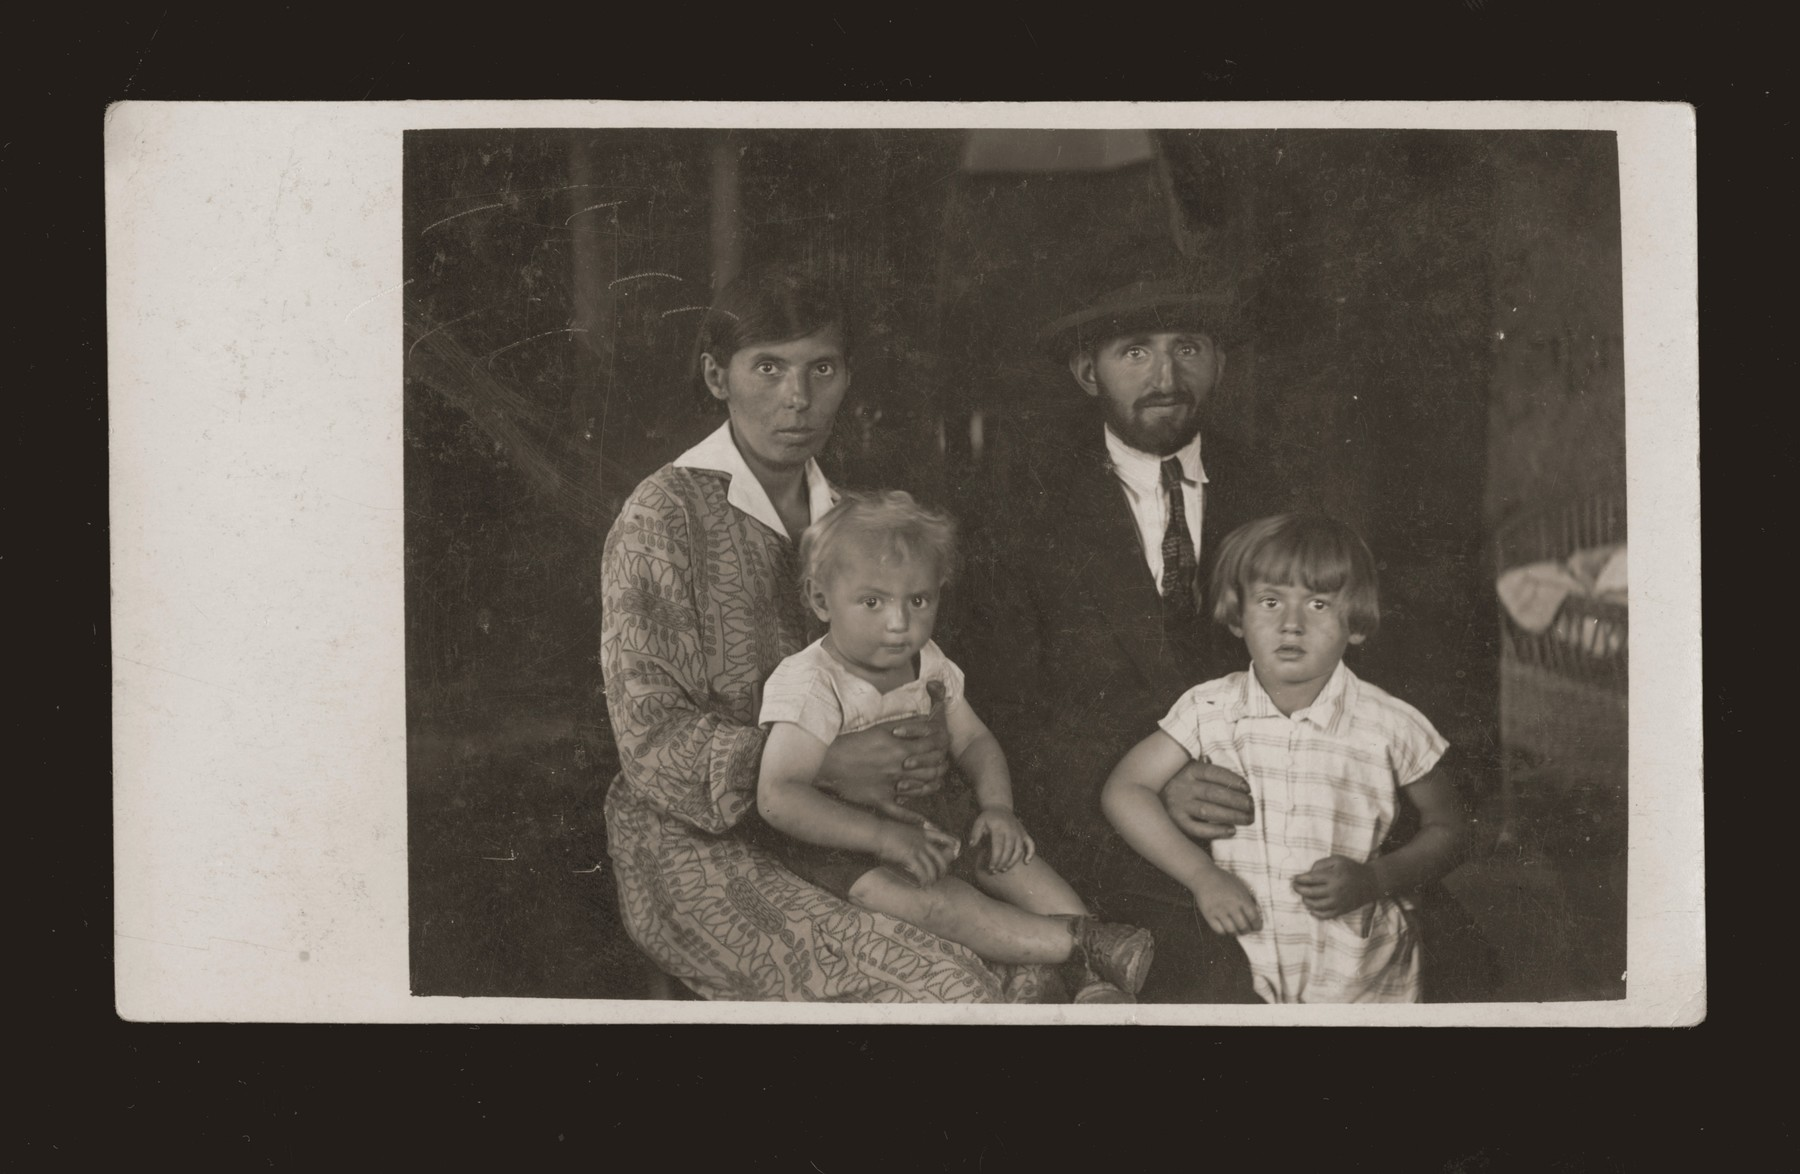 Portrait of a Jewish family [probably members of the Feder or Malach family].